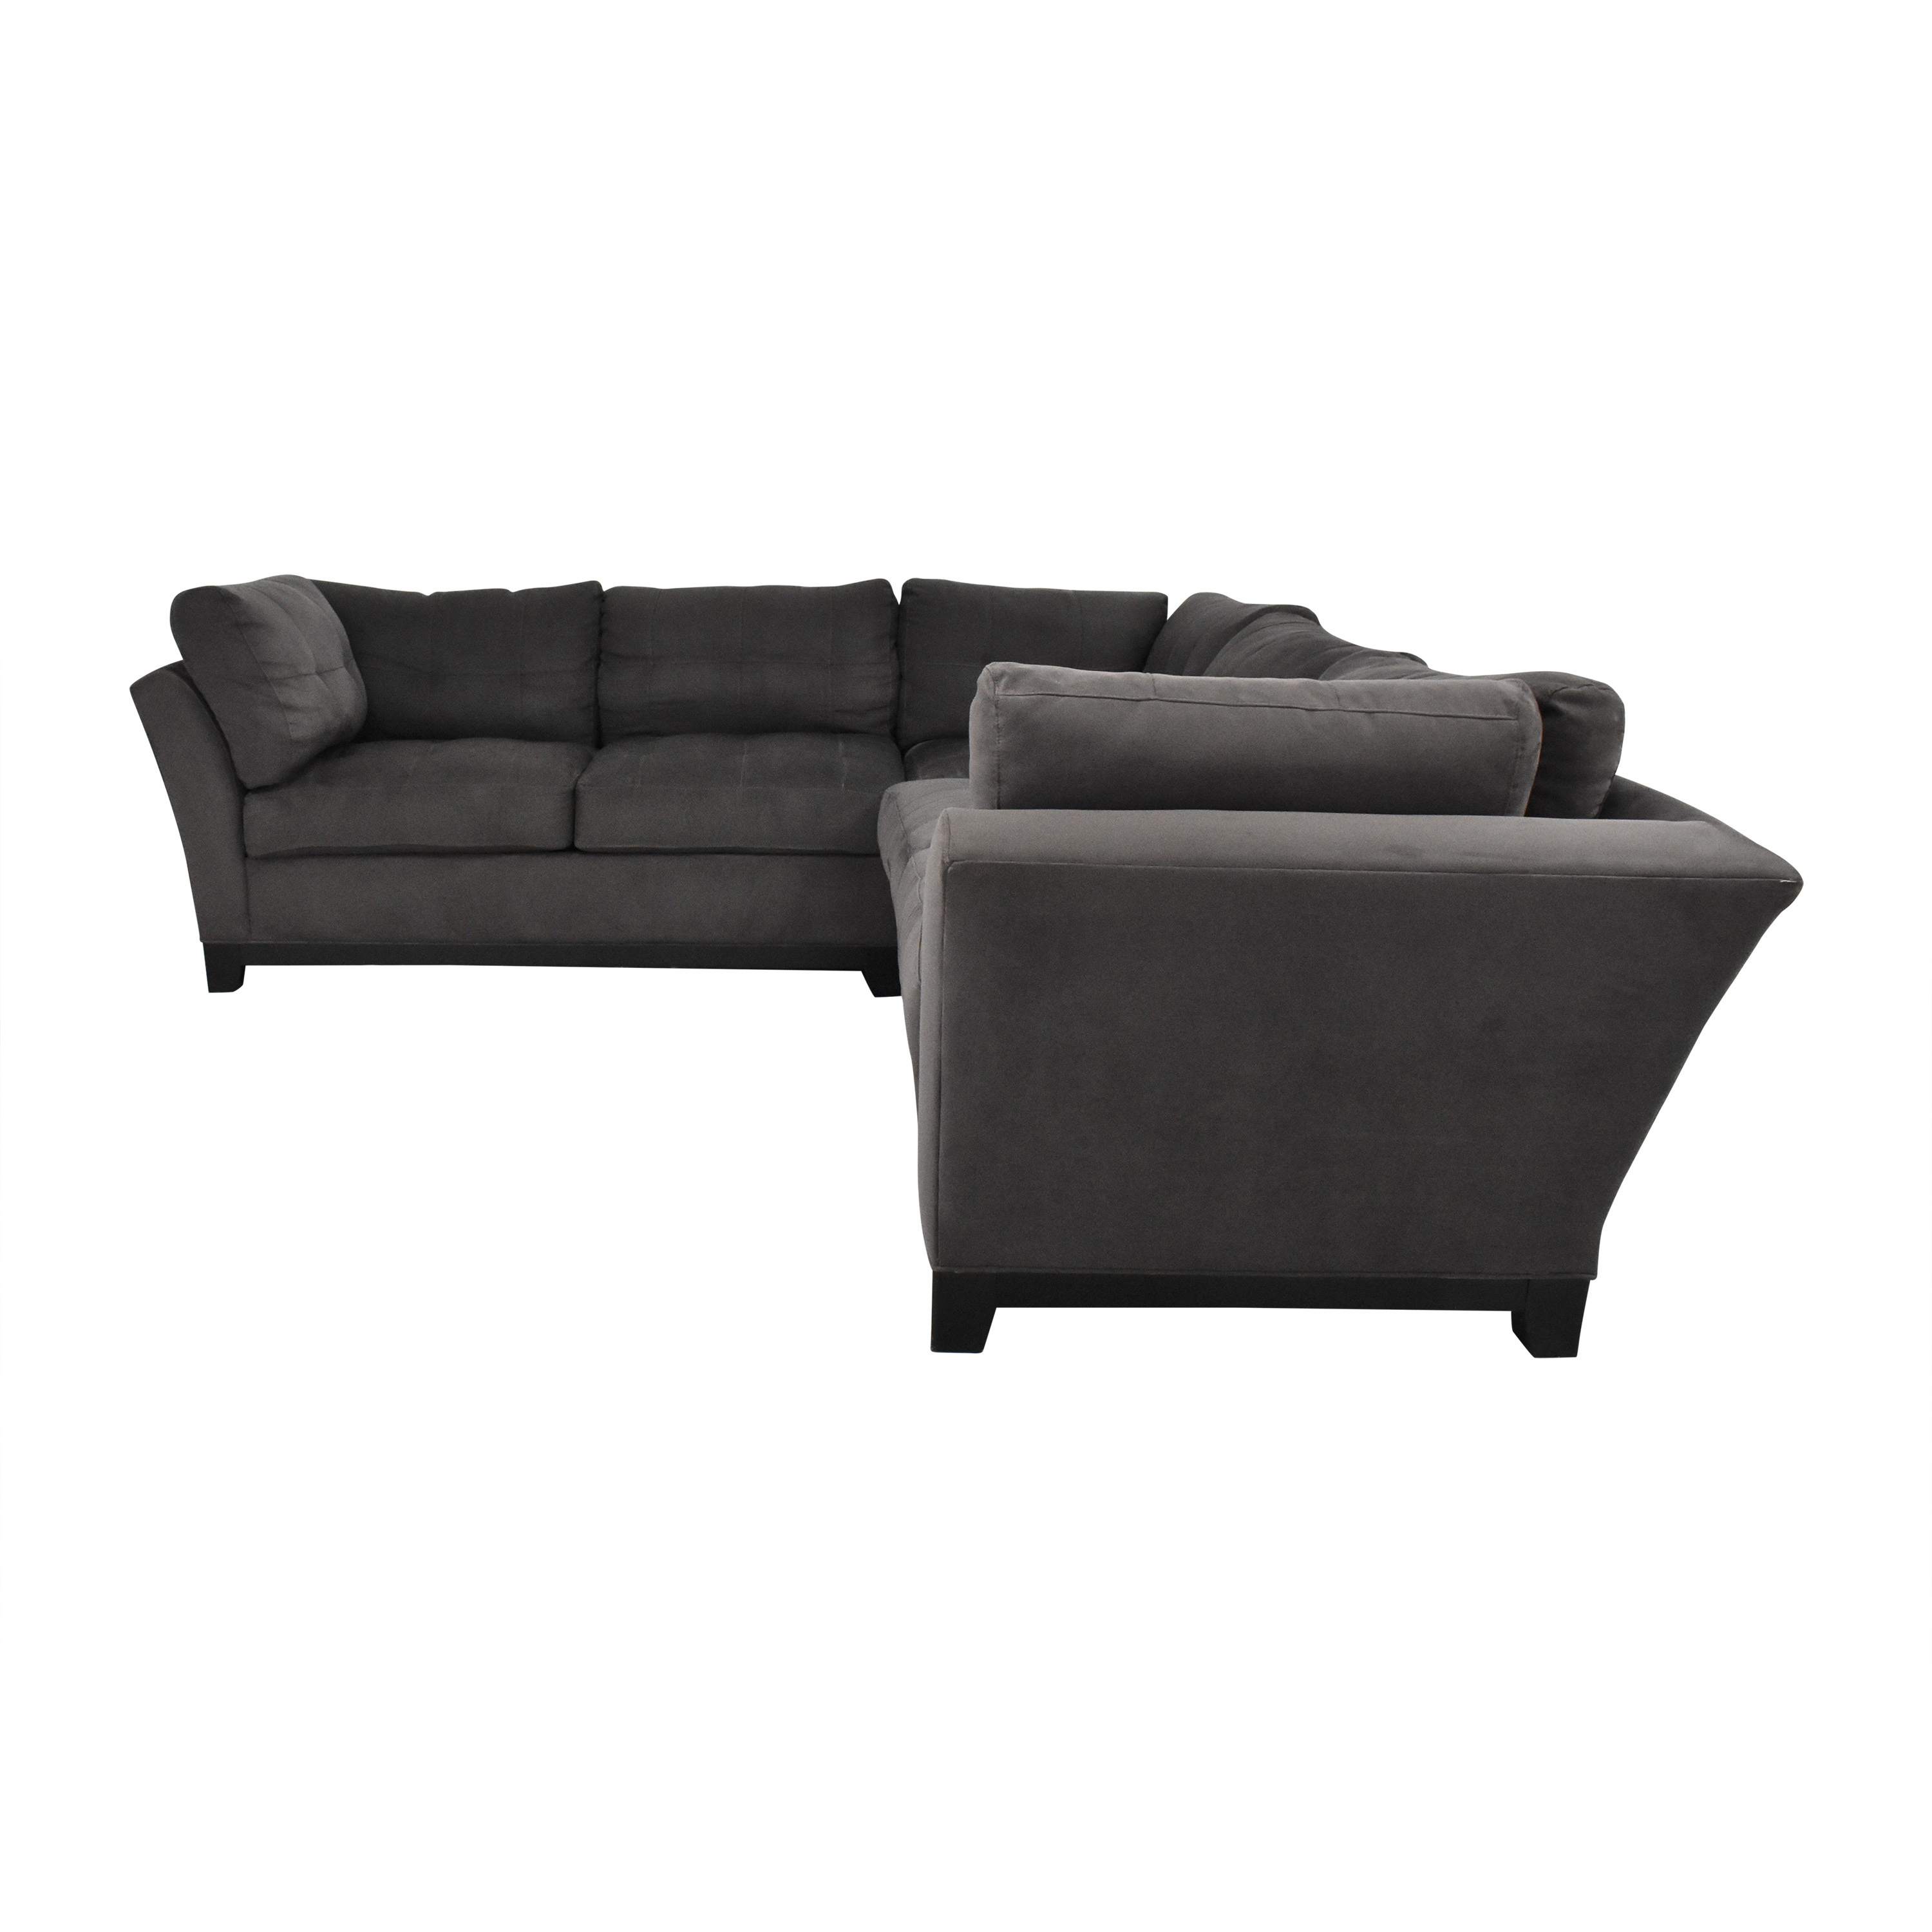 Cindy Crawford Home Cindy Crawford Home Metropolis Three Piece Sectional Sofa second hand